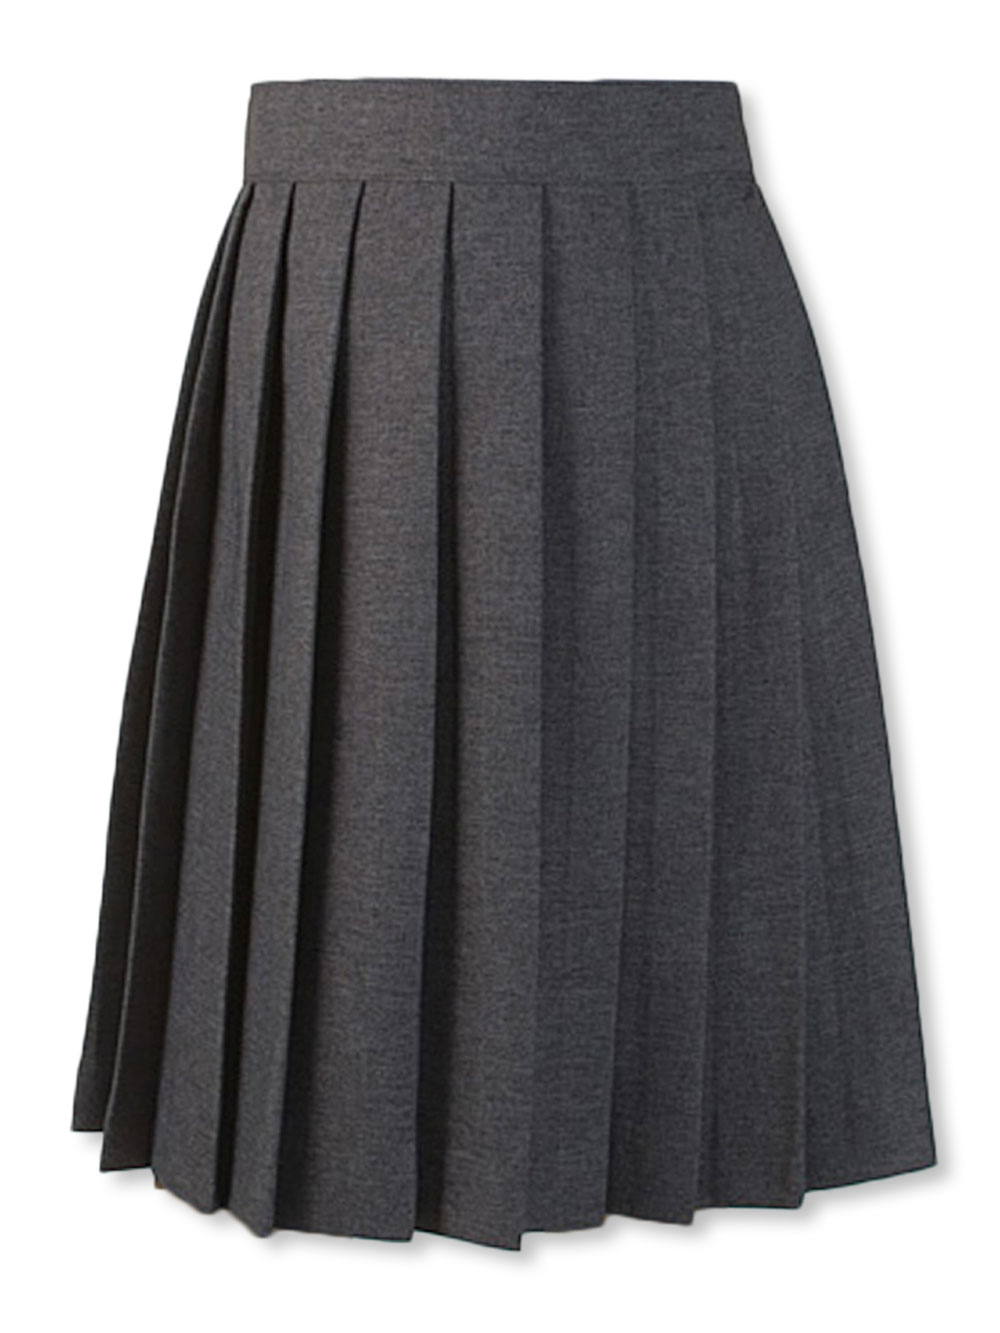 Size 8 Skirts for Girls